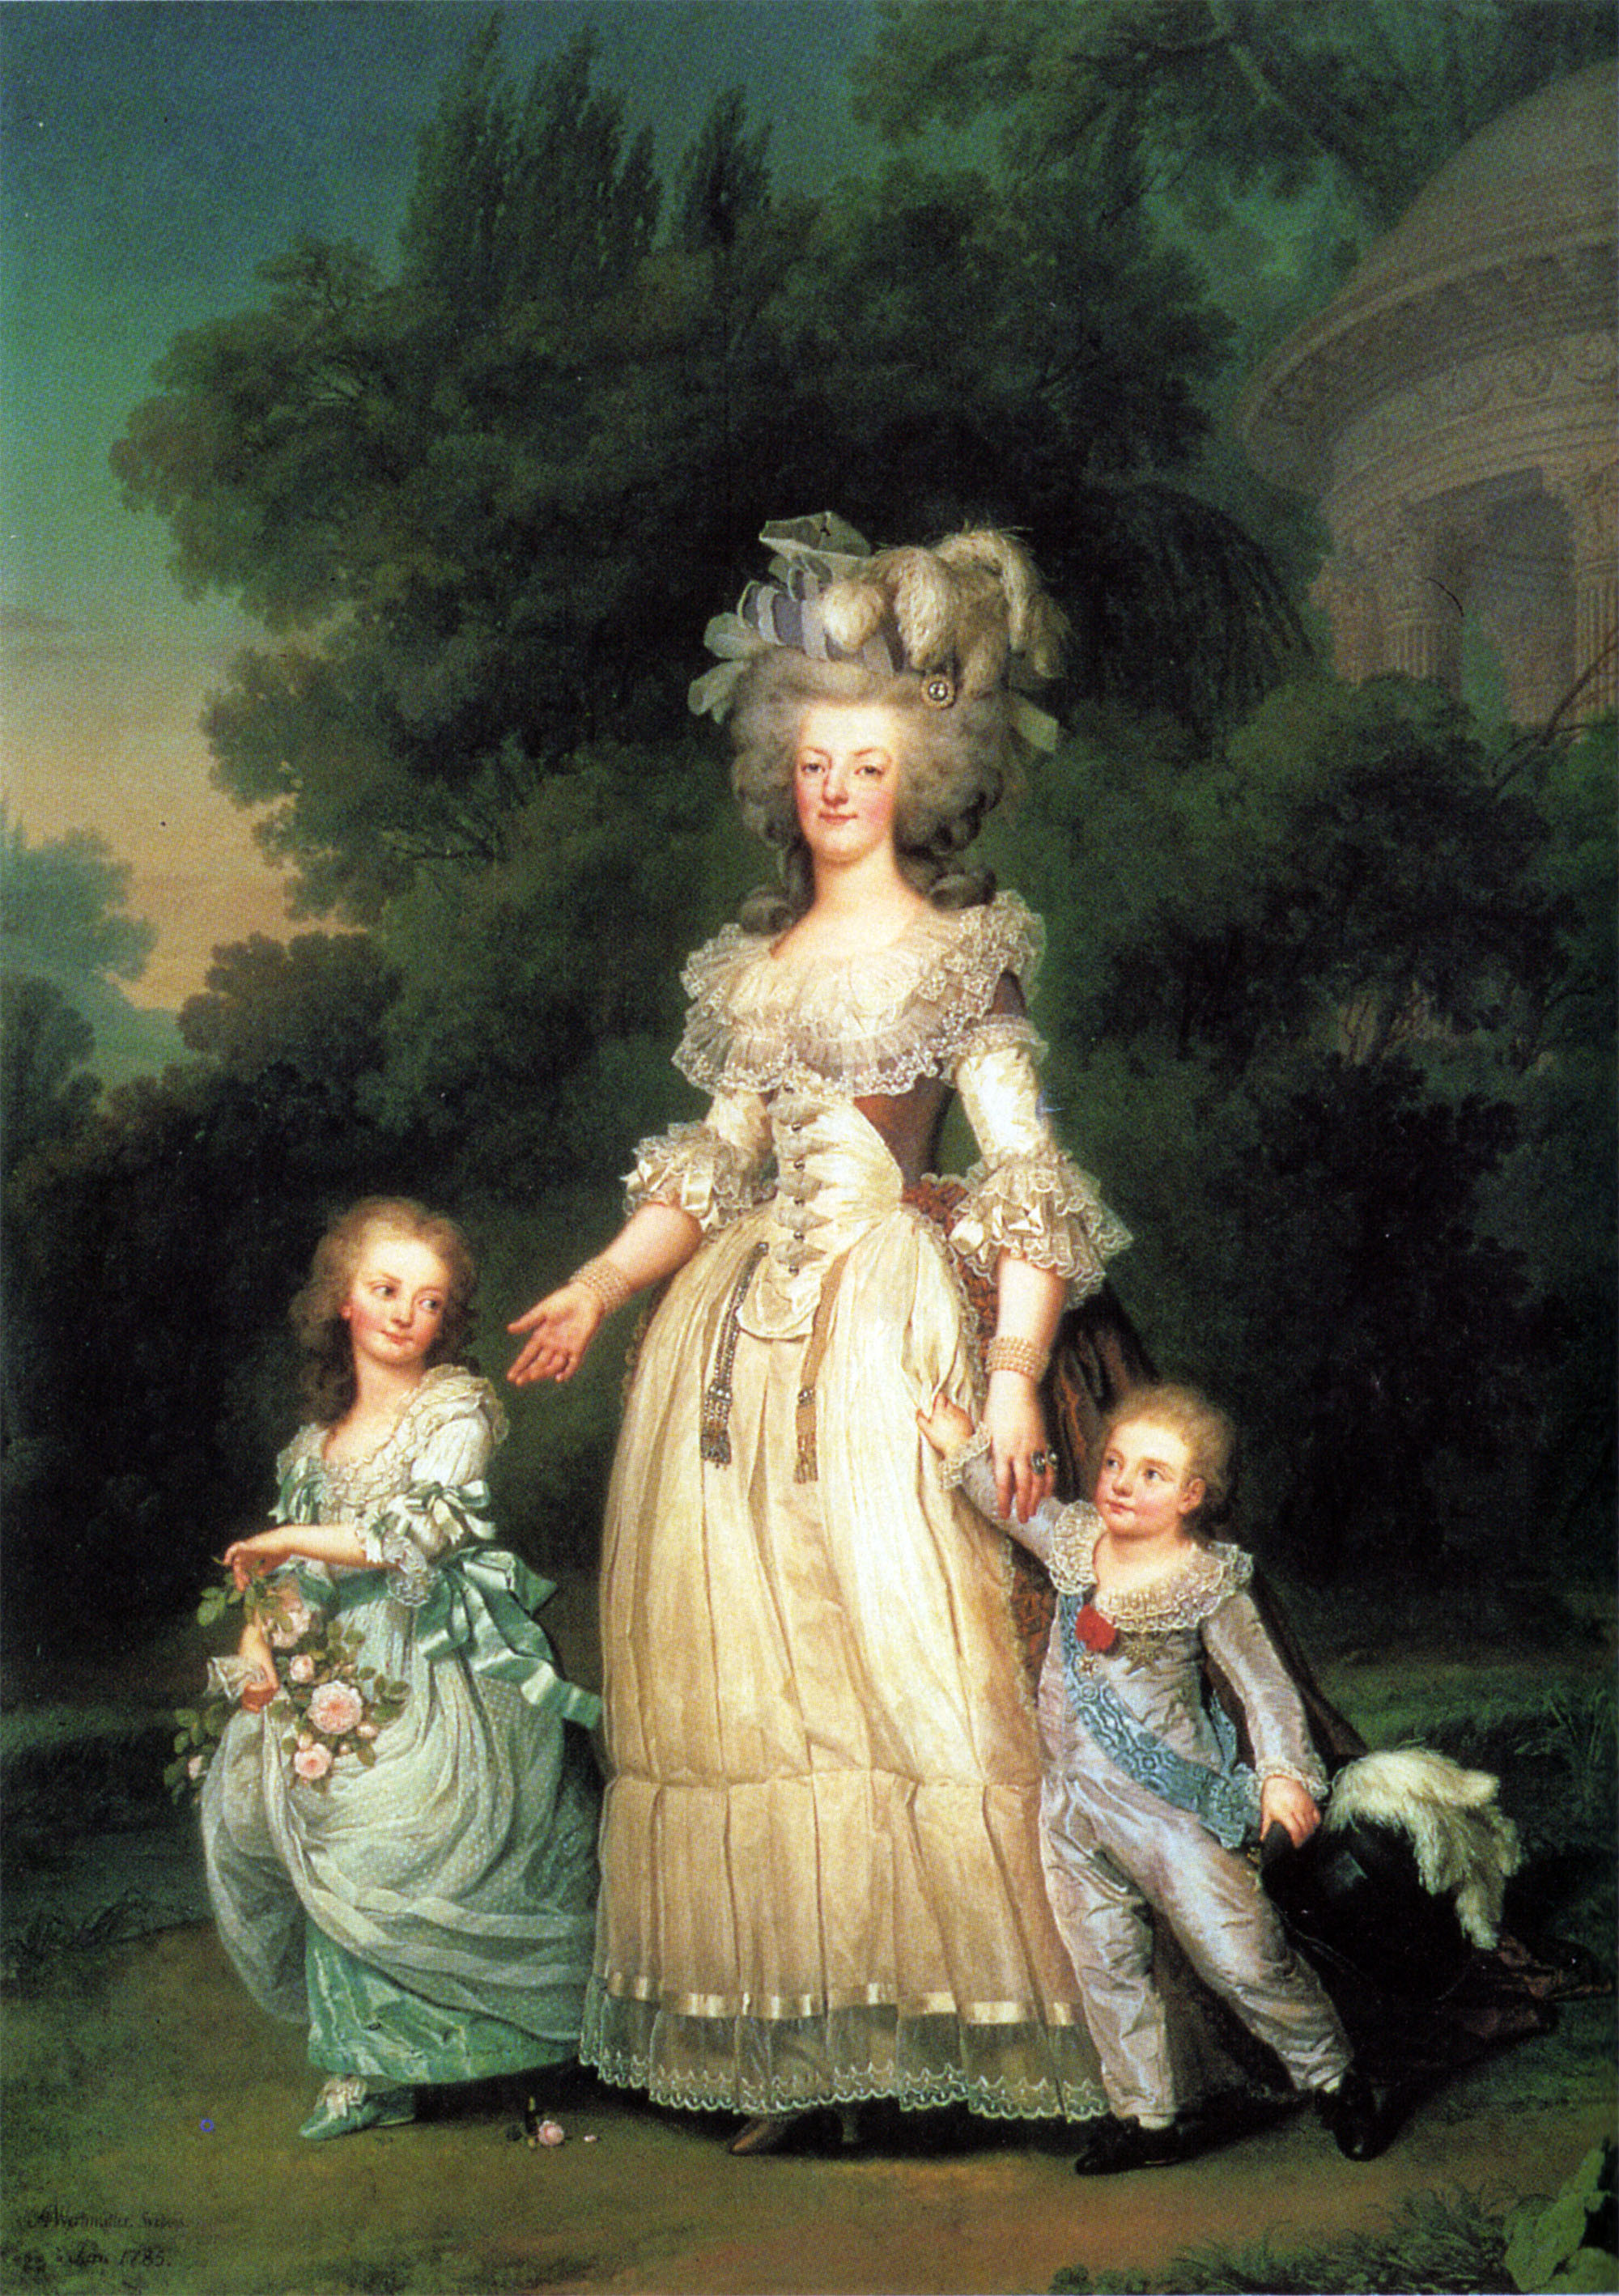 an overview of the life of marie antoinette the queen of france Marie antoinette, queen of france religion played an important role in the life of marie antoinette and louis xvi, both raised in the roman catholic faith.